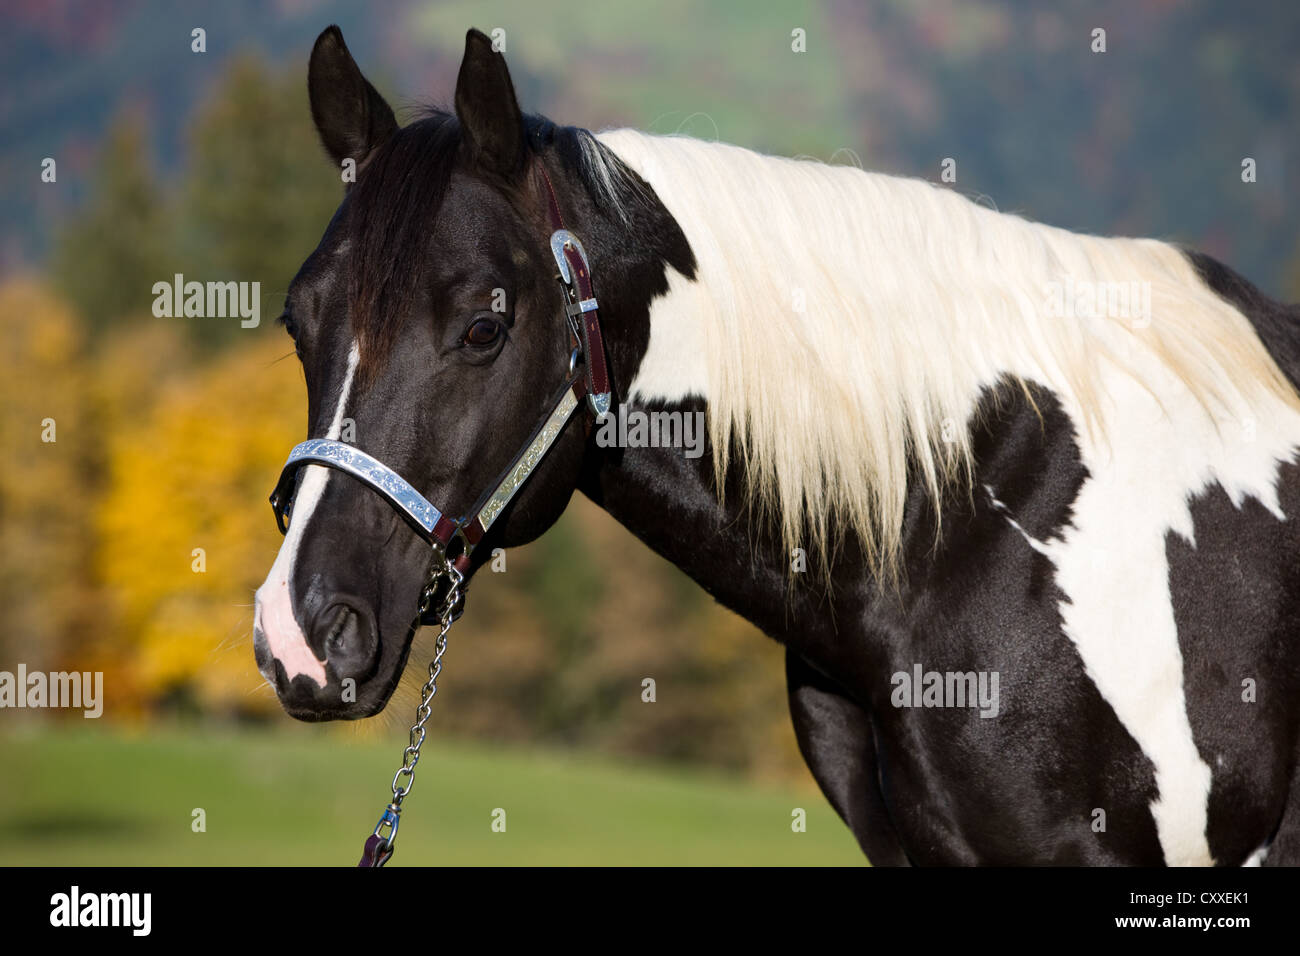 American paint horse tobiano